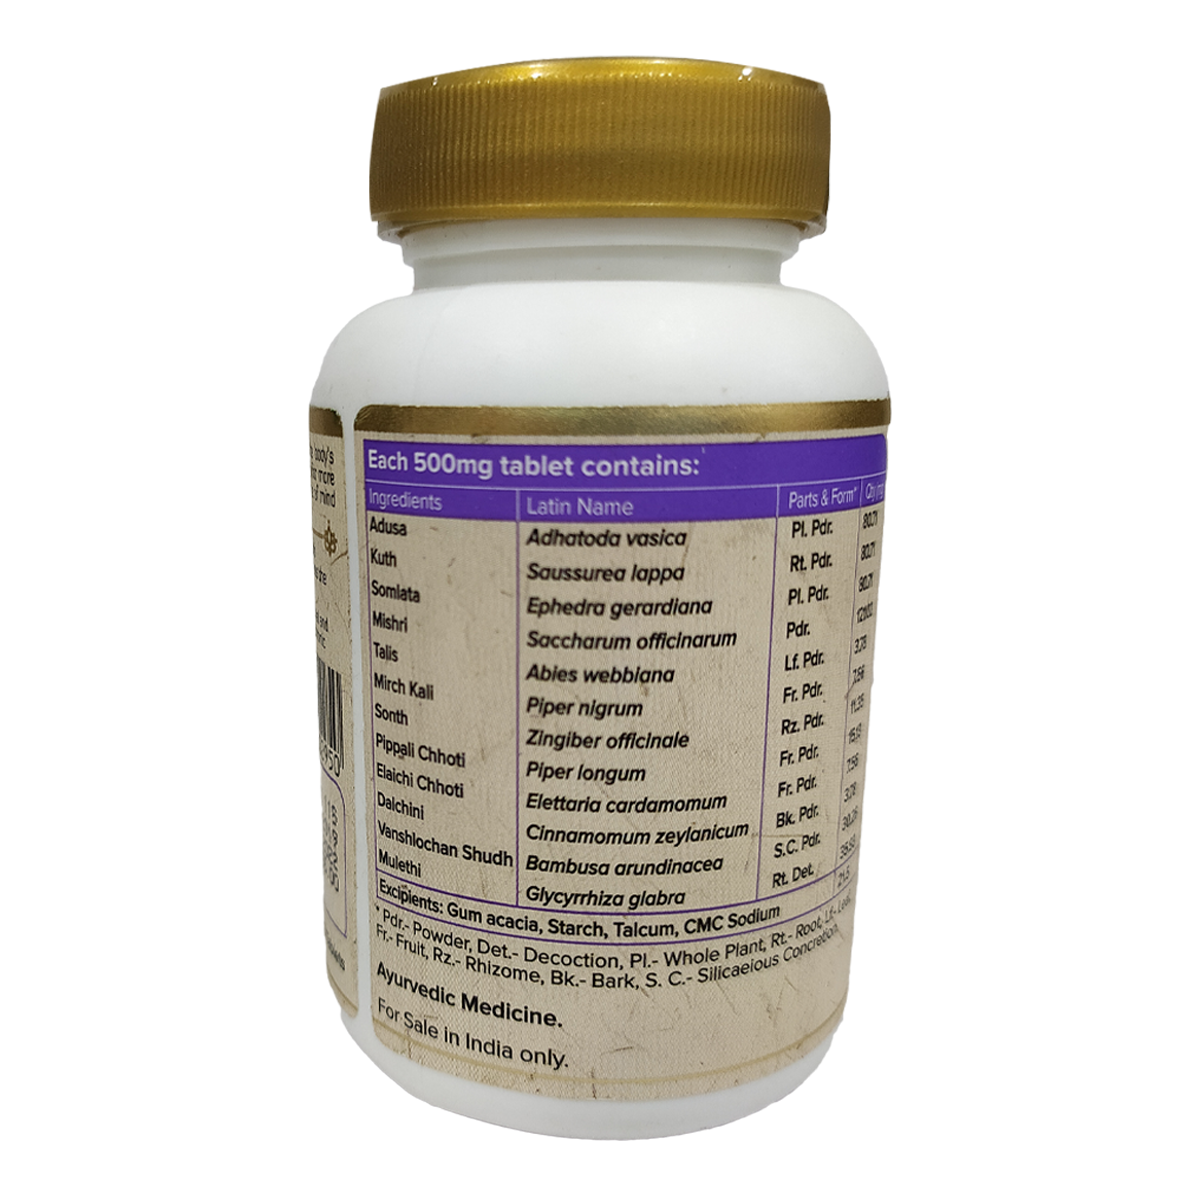 Asthomap - ayurvedic medicine for respiratory problems I 60 tablets Pack - Maharishi Ayurveda